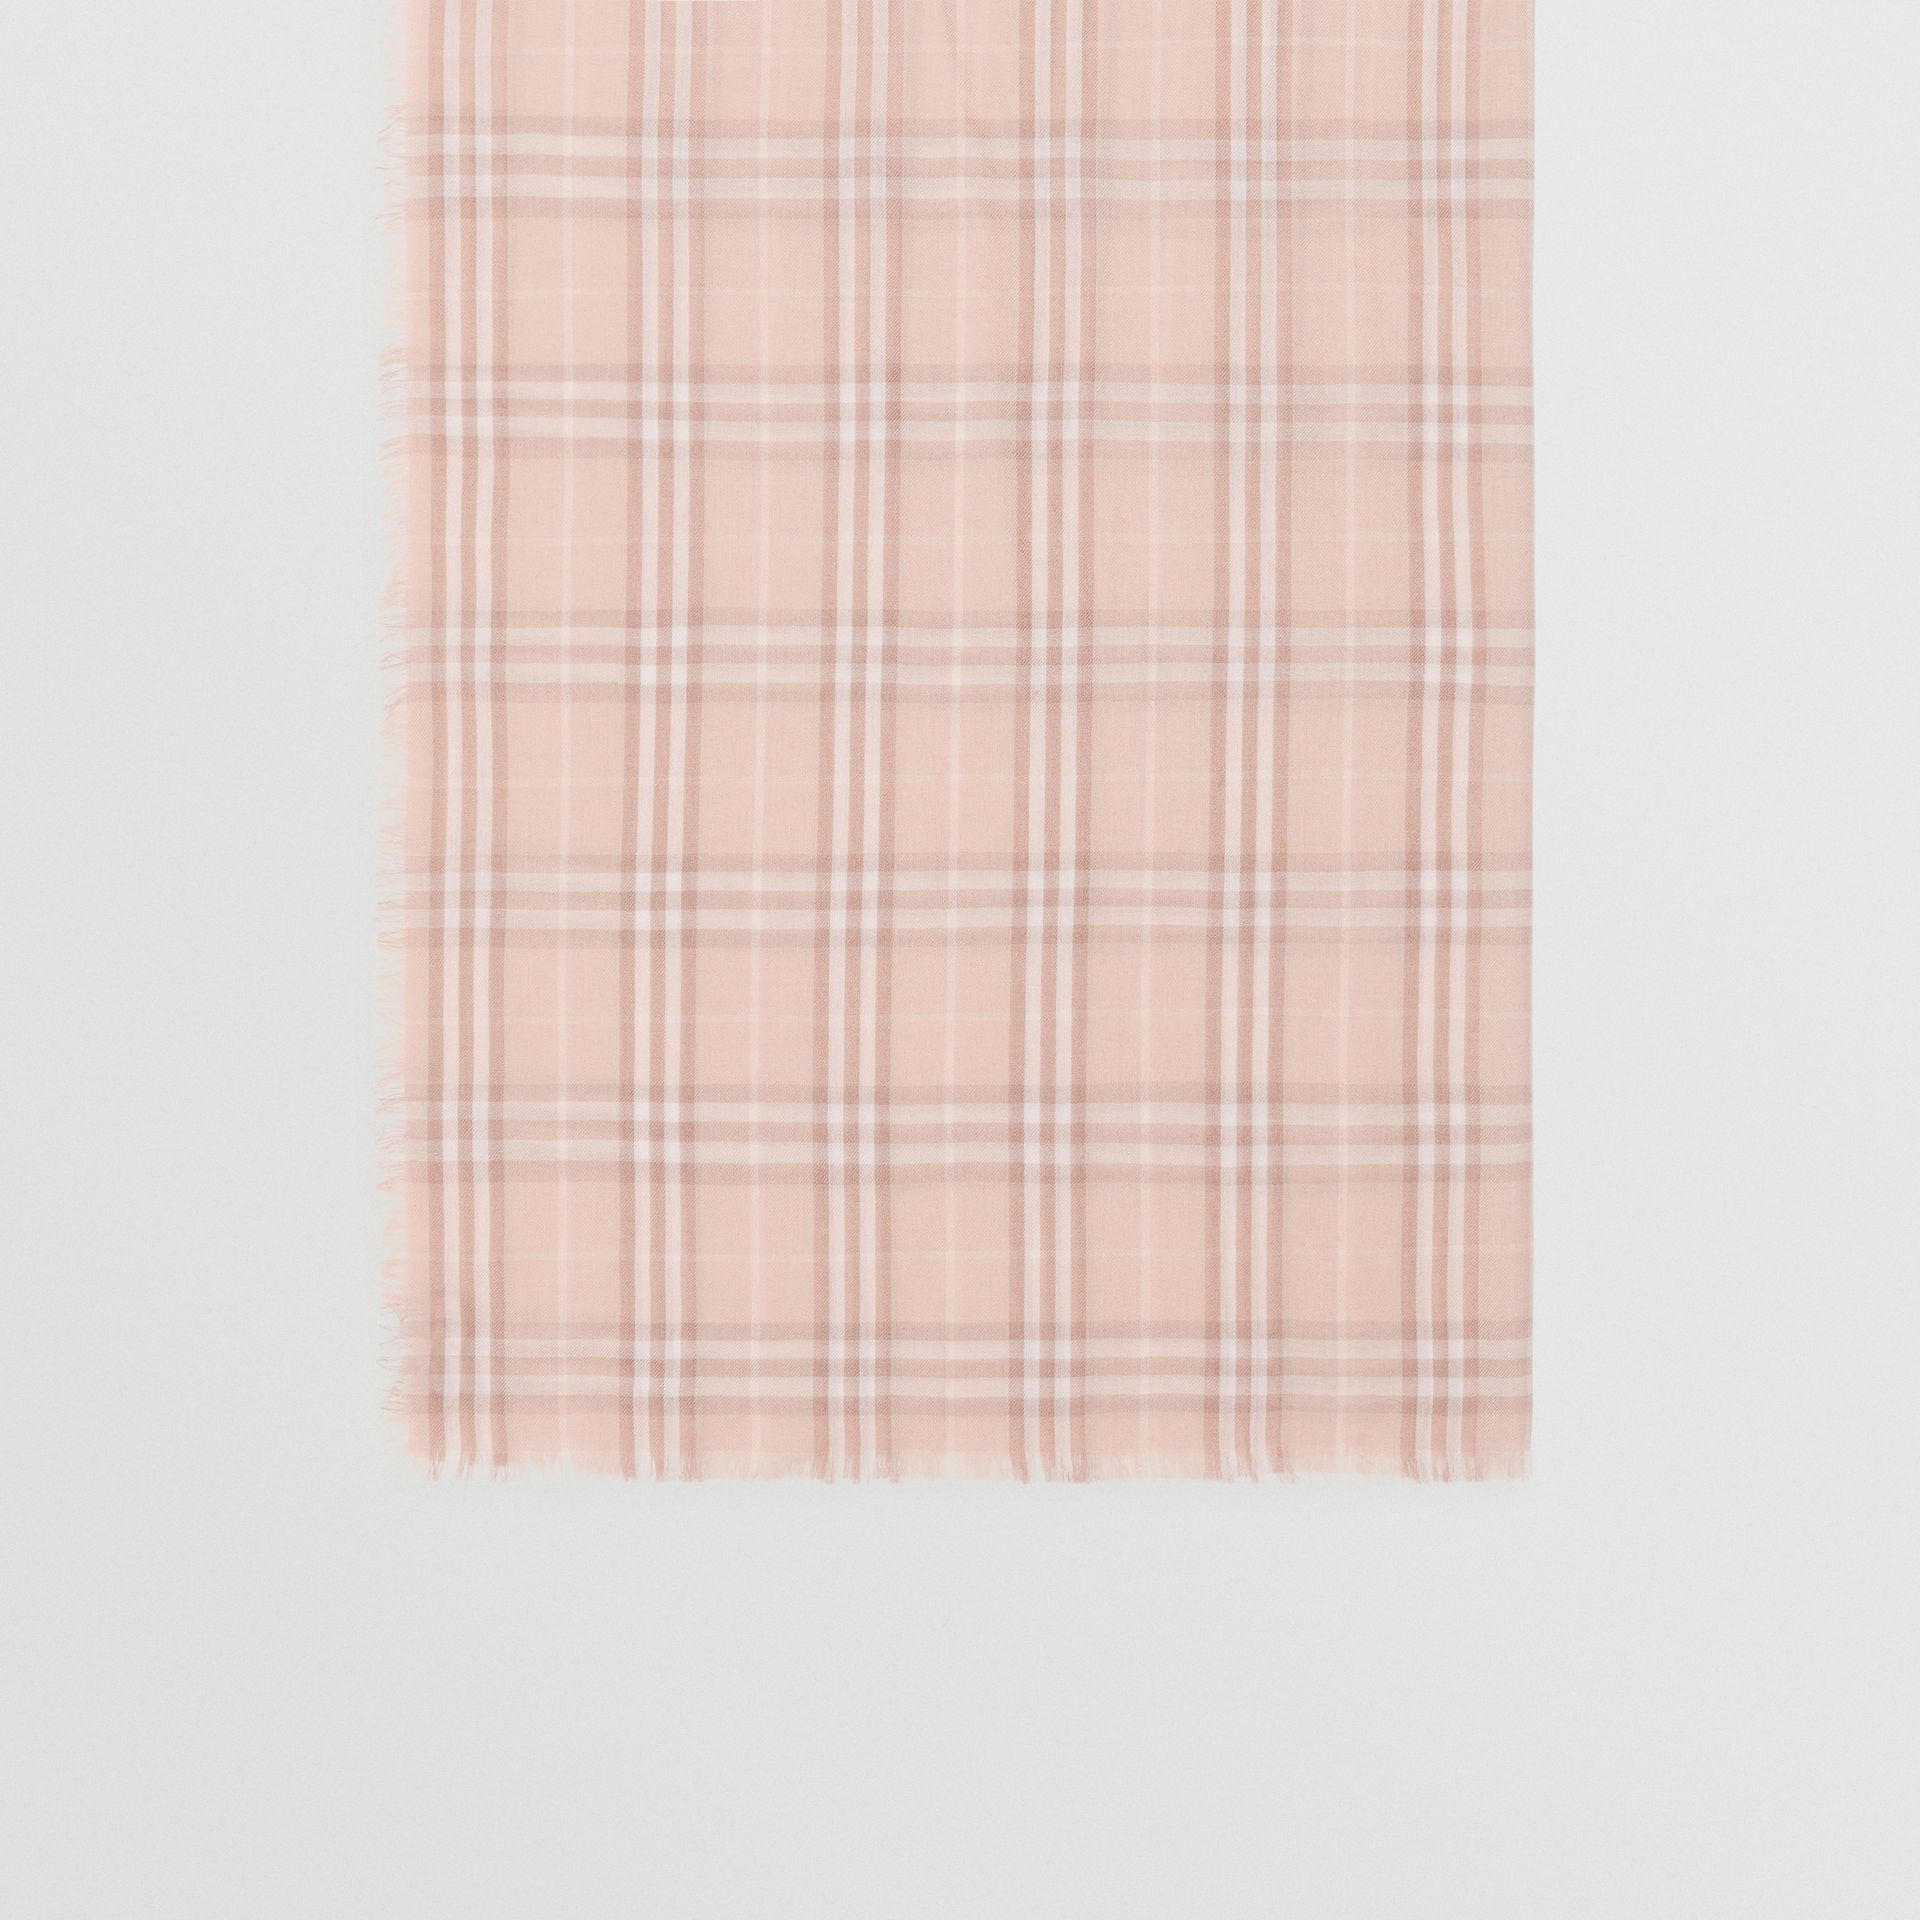 Embroidered Vintage Check Lightweight Cashmere Scarf in Soft Peach | Burberry Australia - gallery image 2